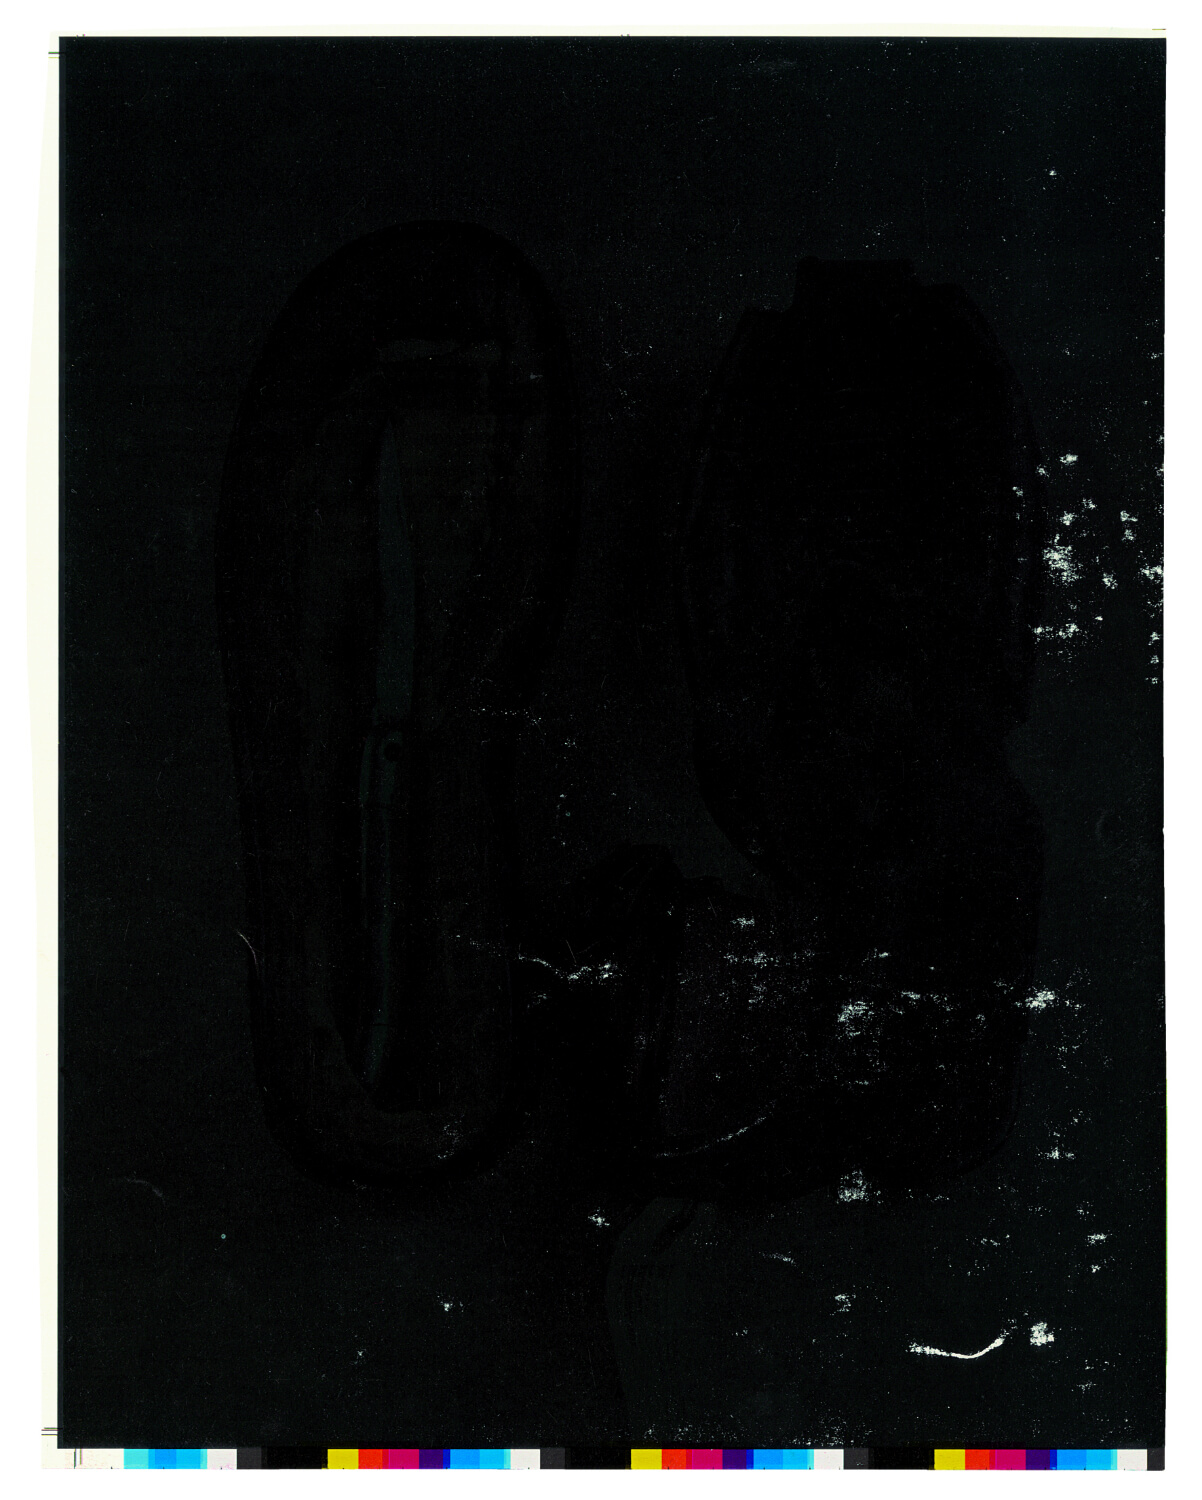 Scarti, Adam Broomberg & Oliver Chanarin, Trolley Books, 2013 (twice-printed lithographic paper, 8.5 x 24.5 cm, 2003)